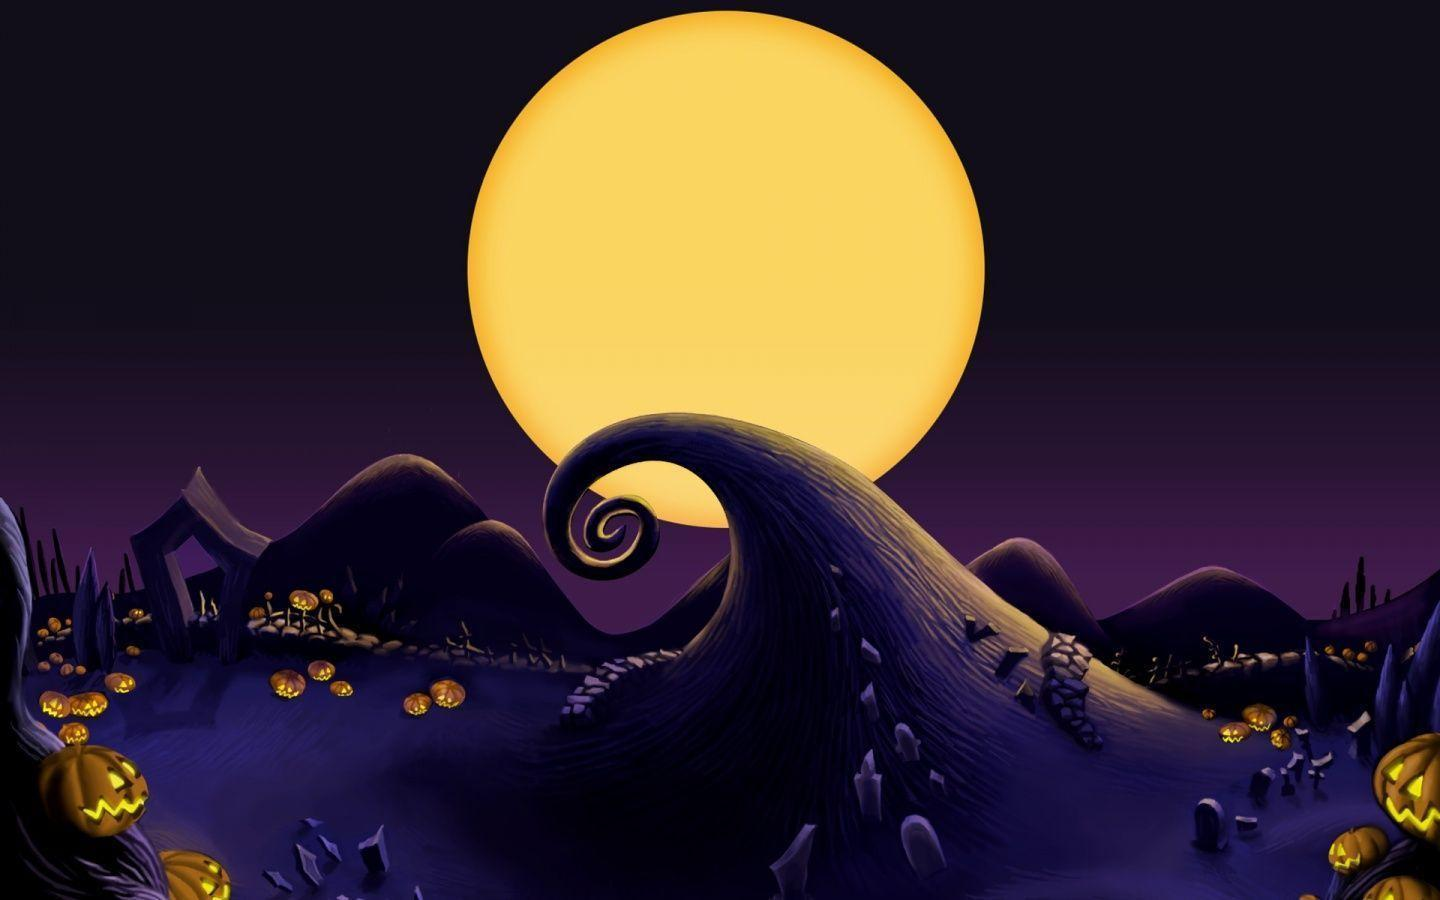 1440x900 The Nightmare Before Christmas Landscape desktop PC and